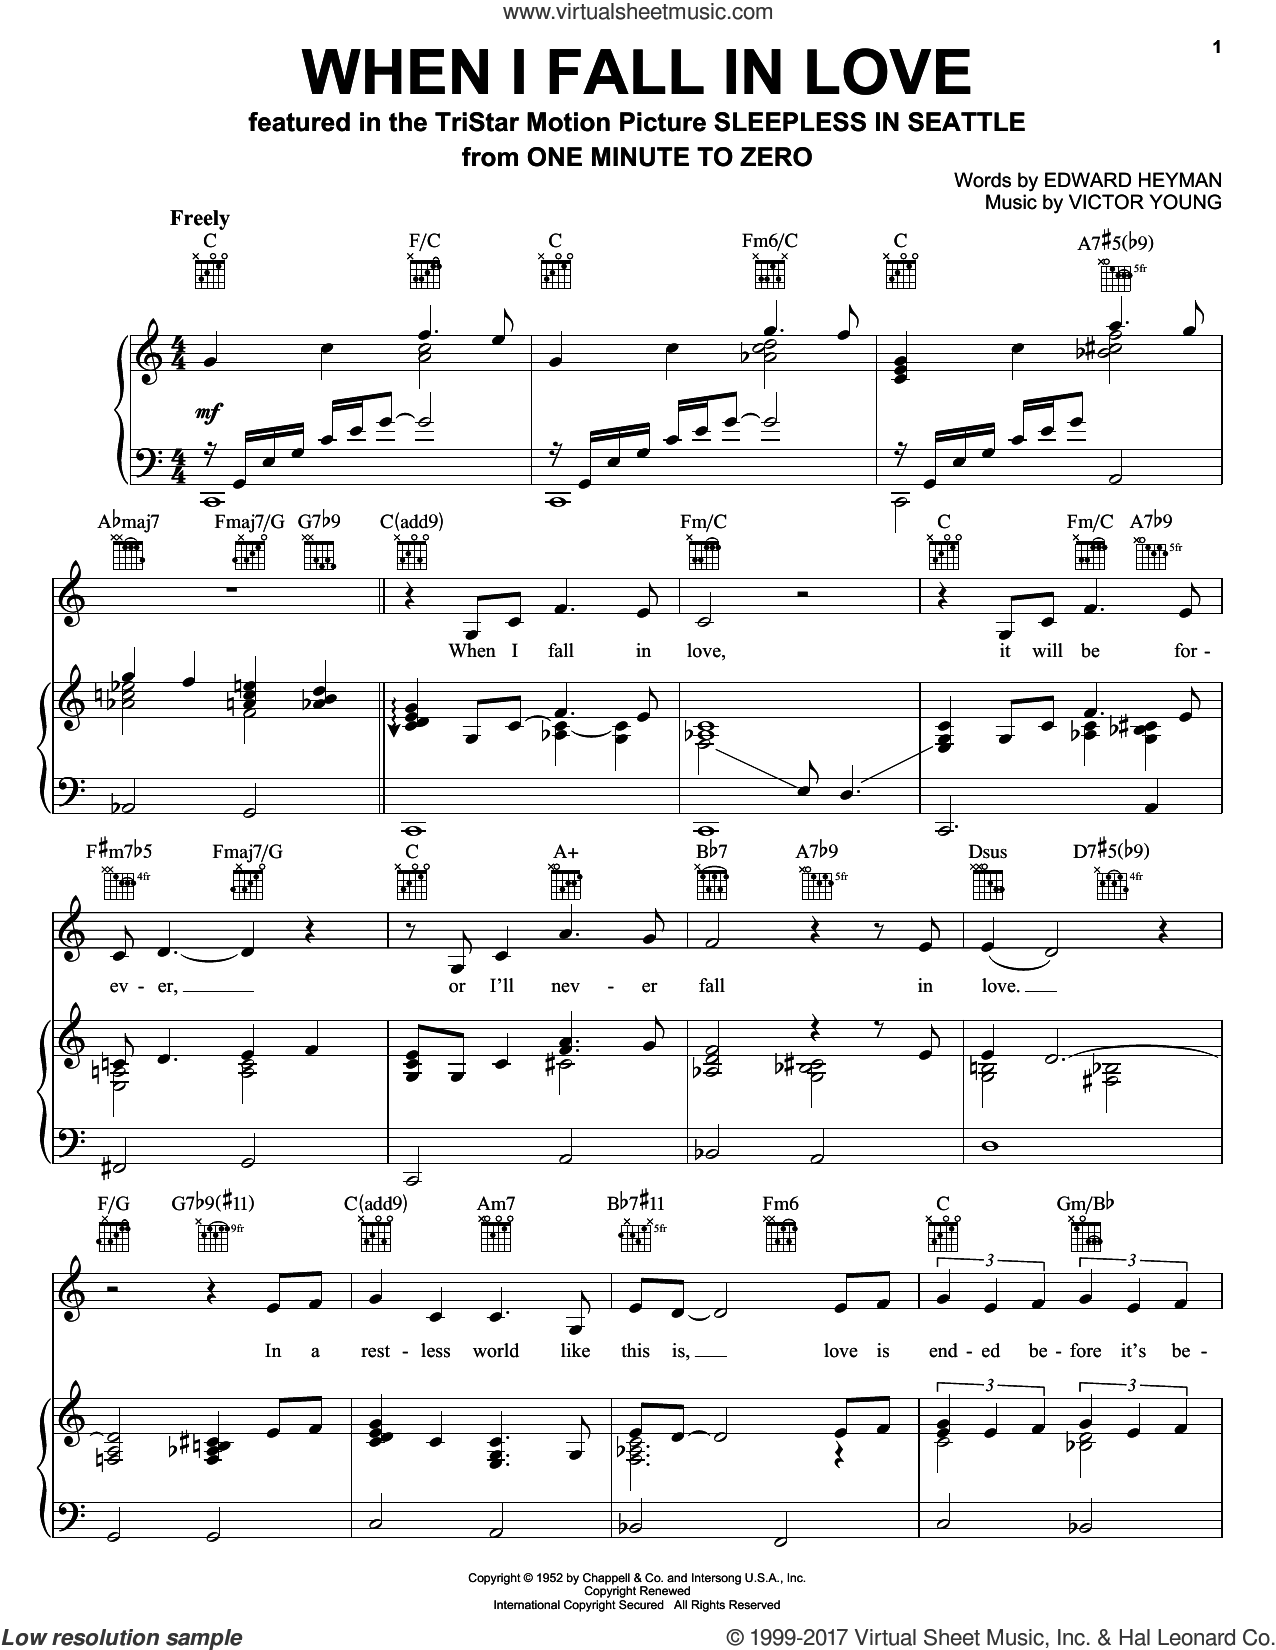 When I Fall In Love sheet music for voice, piano or guitar by Celine Dion, David Foster, Doris Day, Edward Heyman and Victor Young. Score Image Preview.